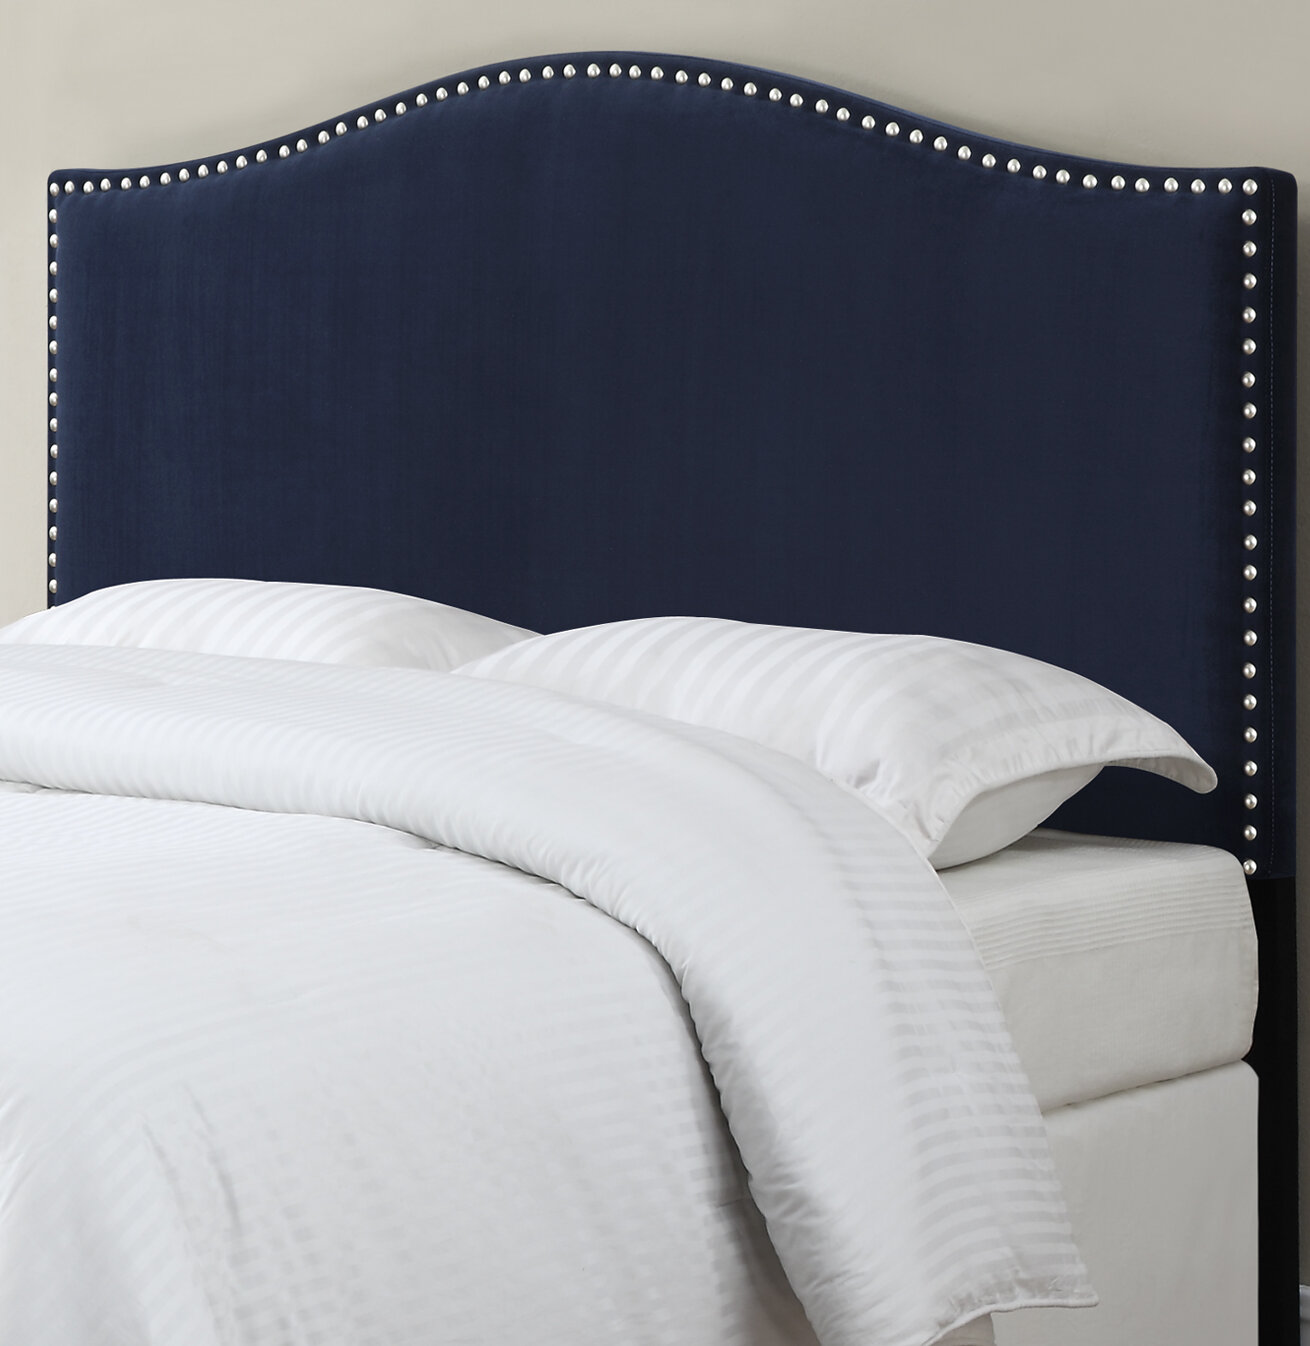 nail pin the love upholstered and main of you sophistication shaped joss headboard head elegance simple ll headboards